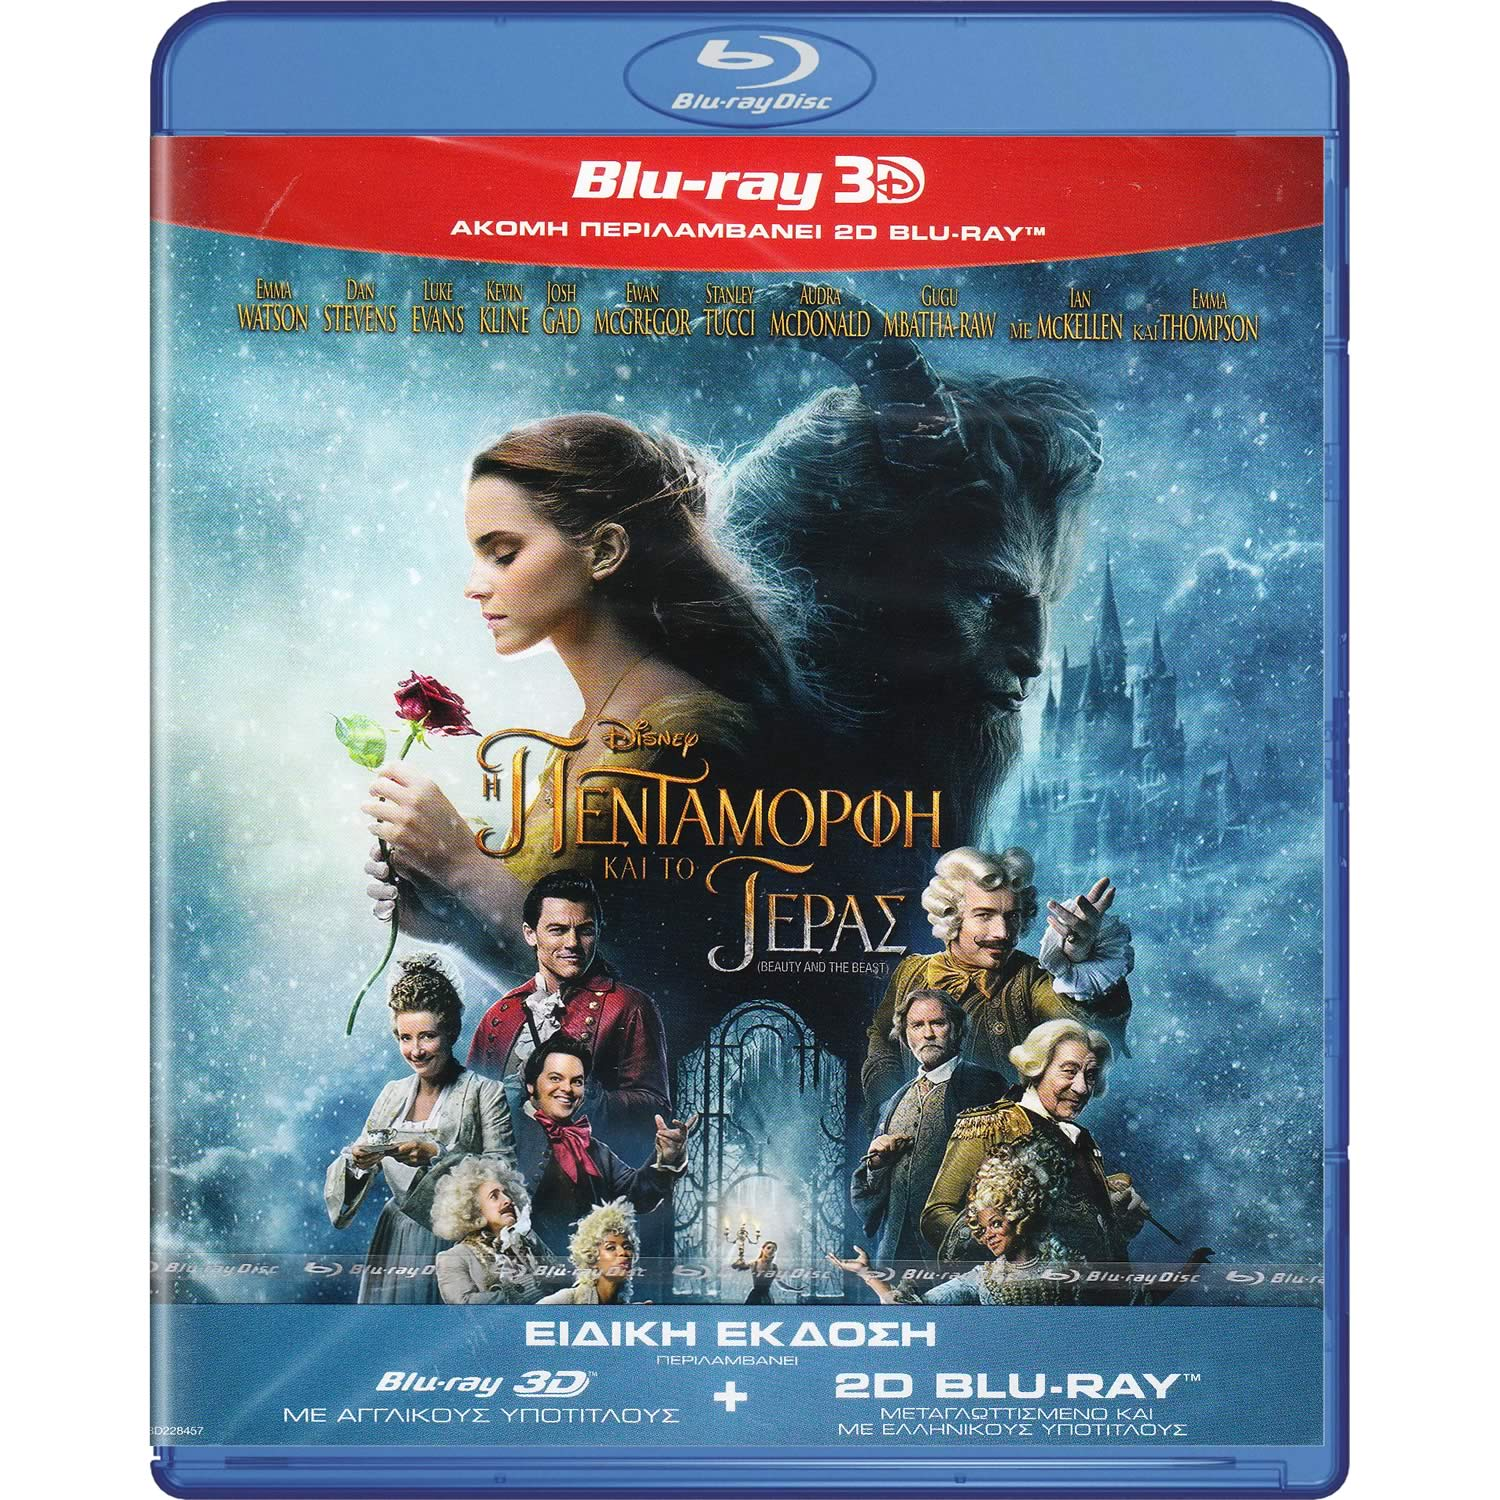 BEAUTY AND THE BEAST [2017] 3D (BLU-RAY 3D + BLU-RAY)